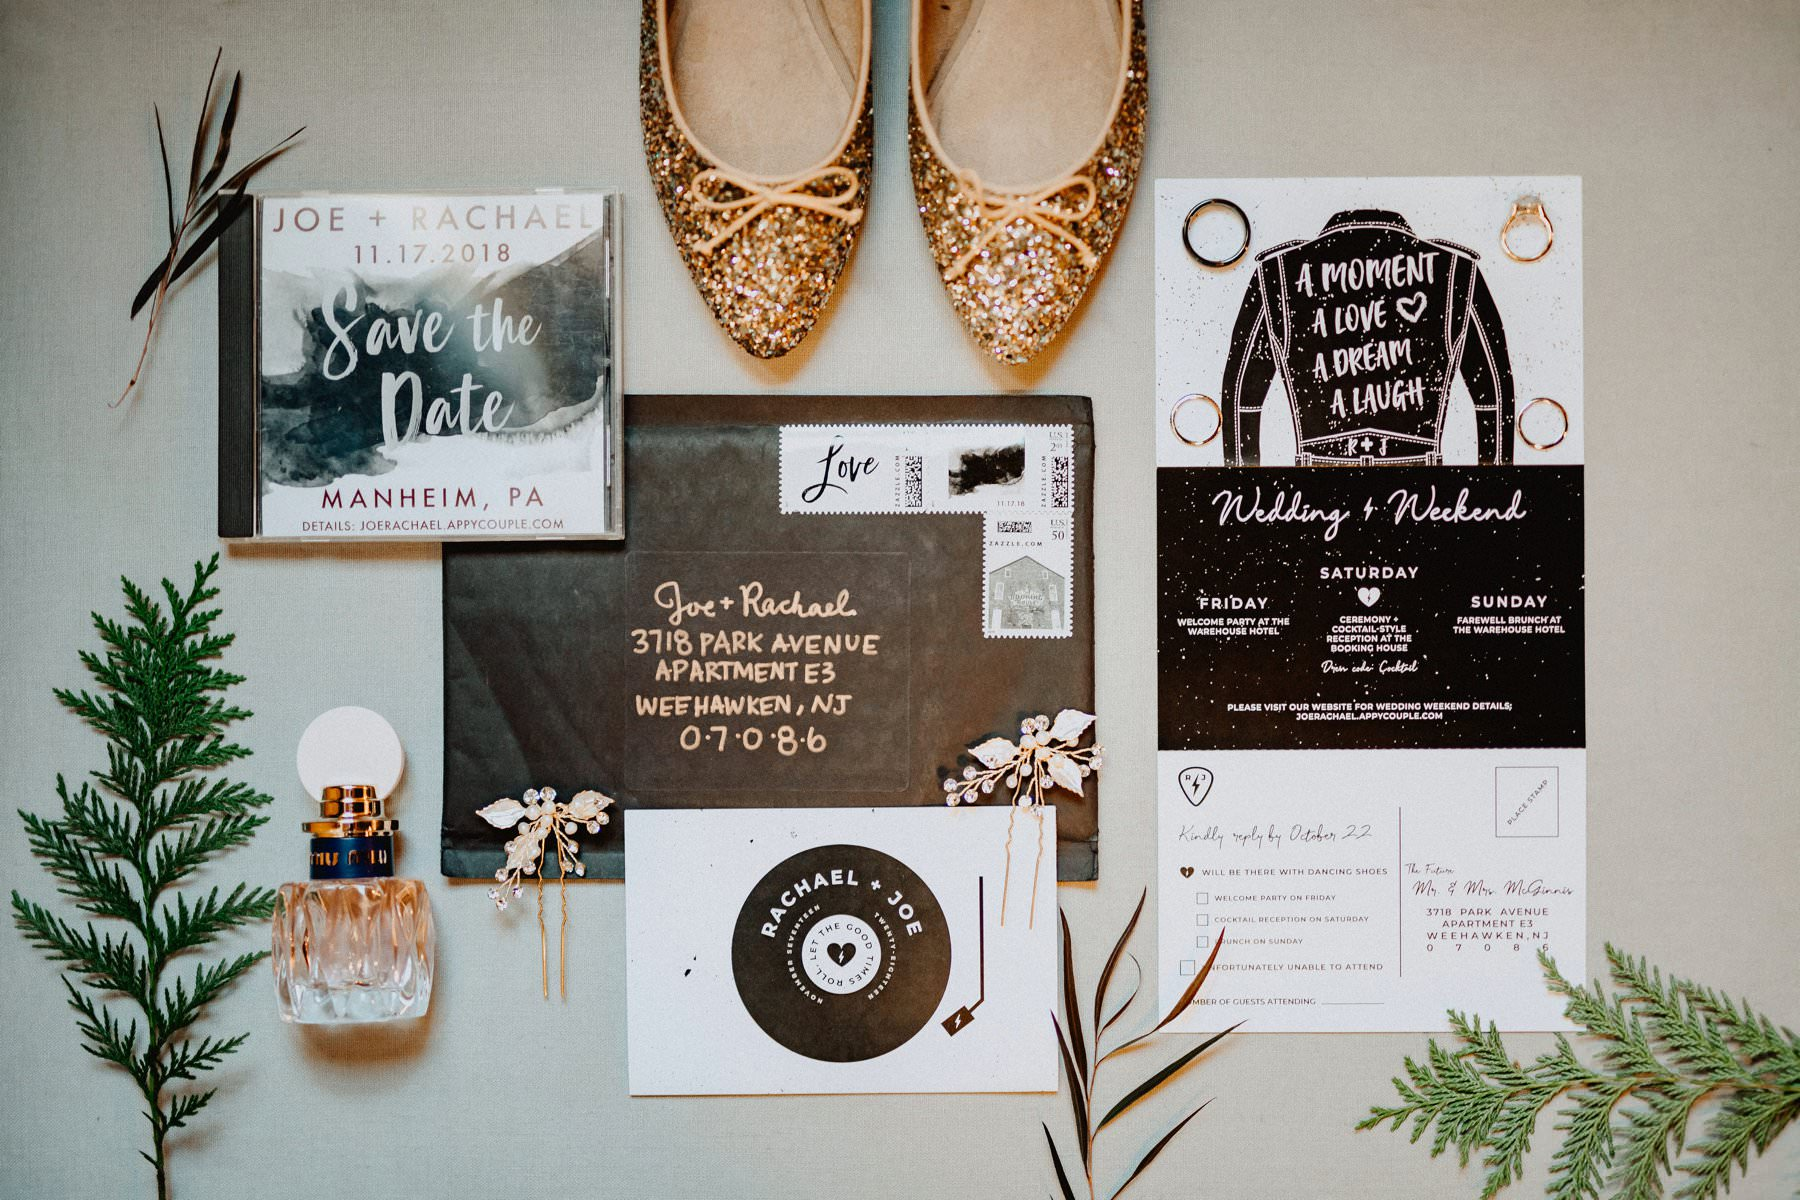 002-The_booking_house_wedding-001.jpg